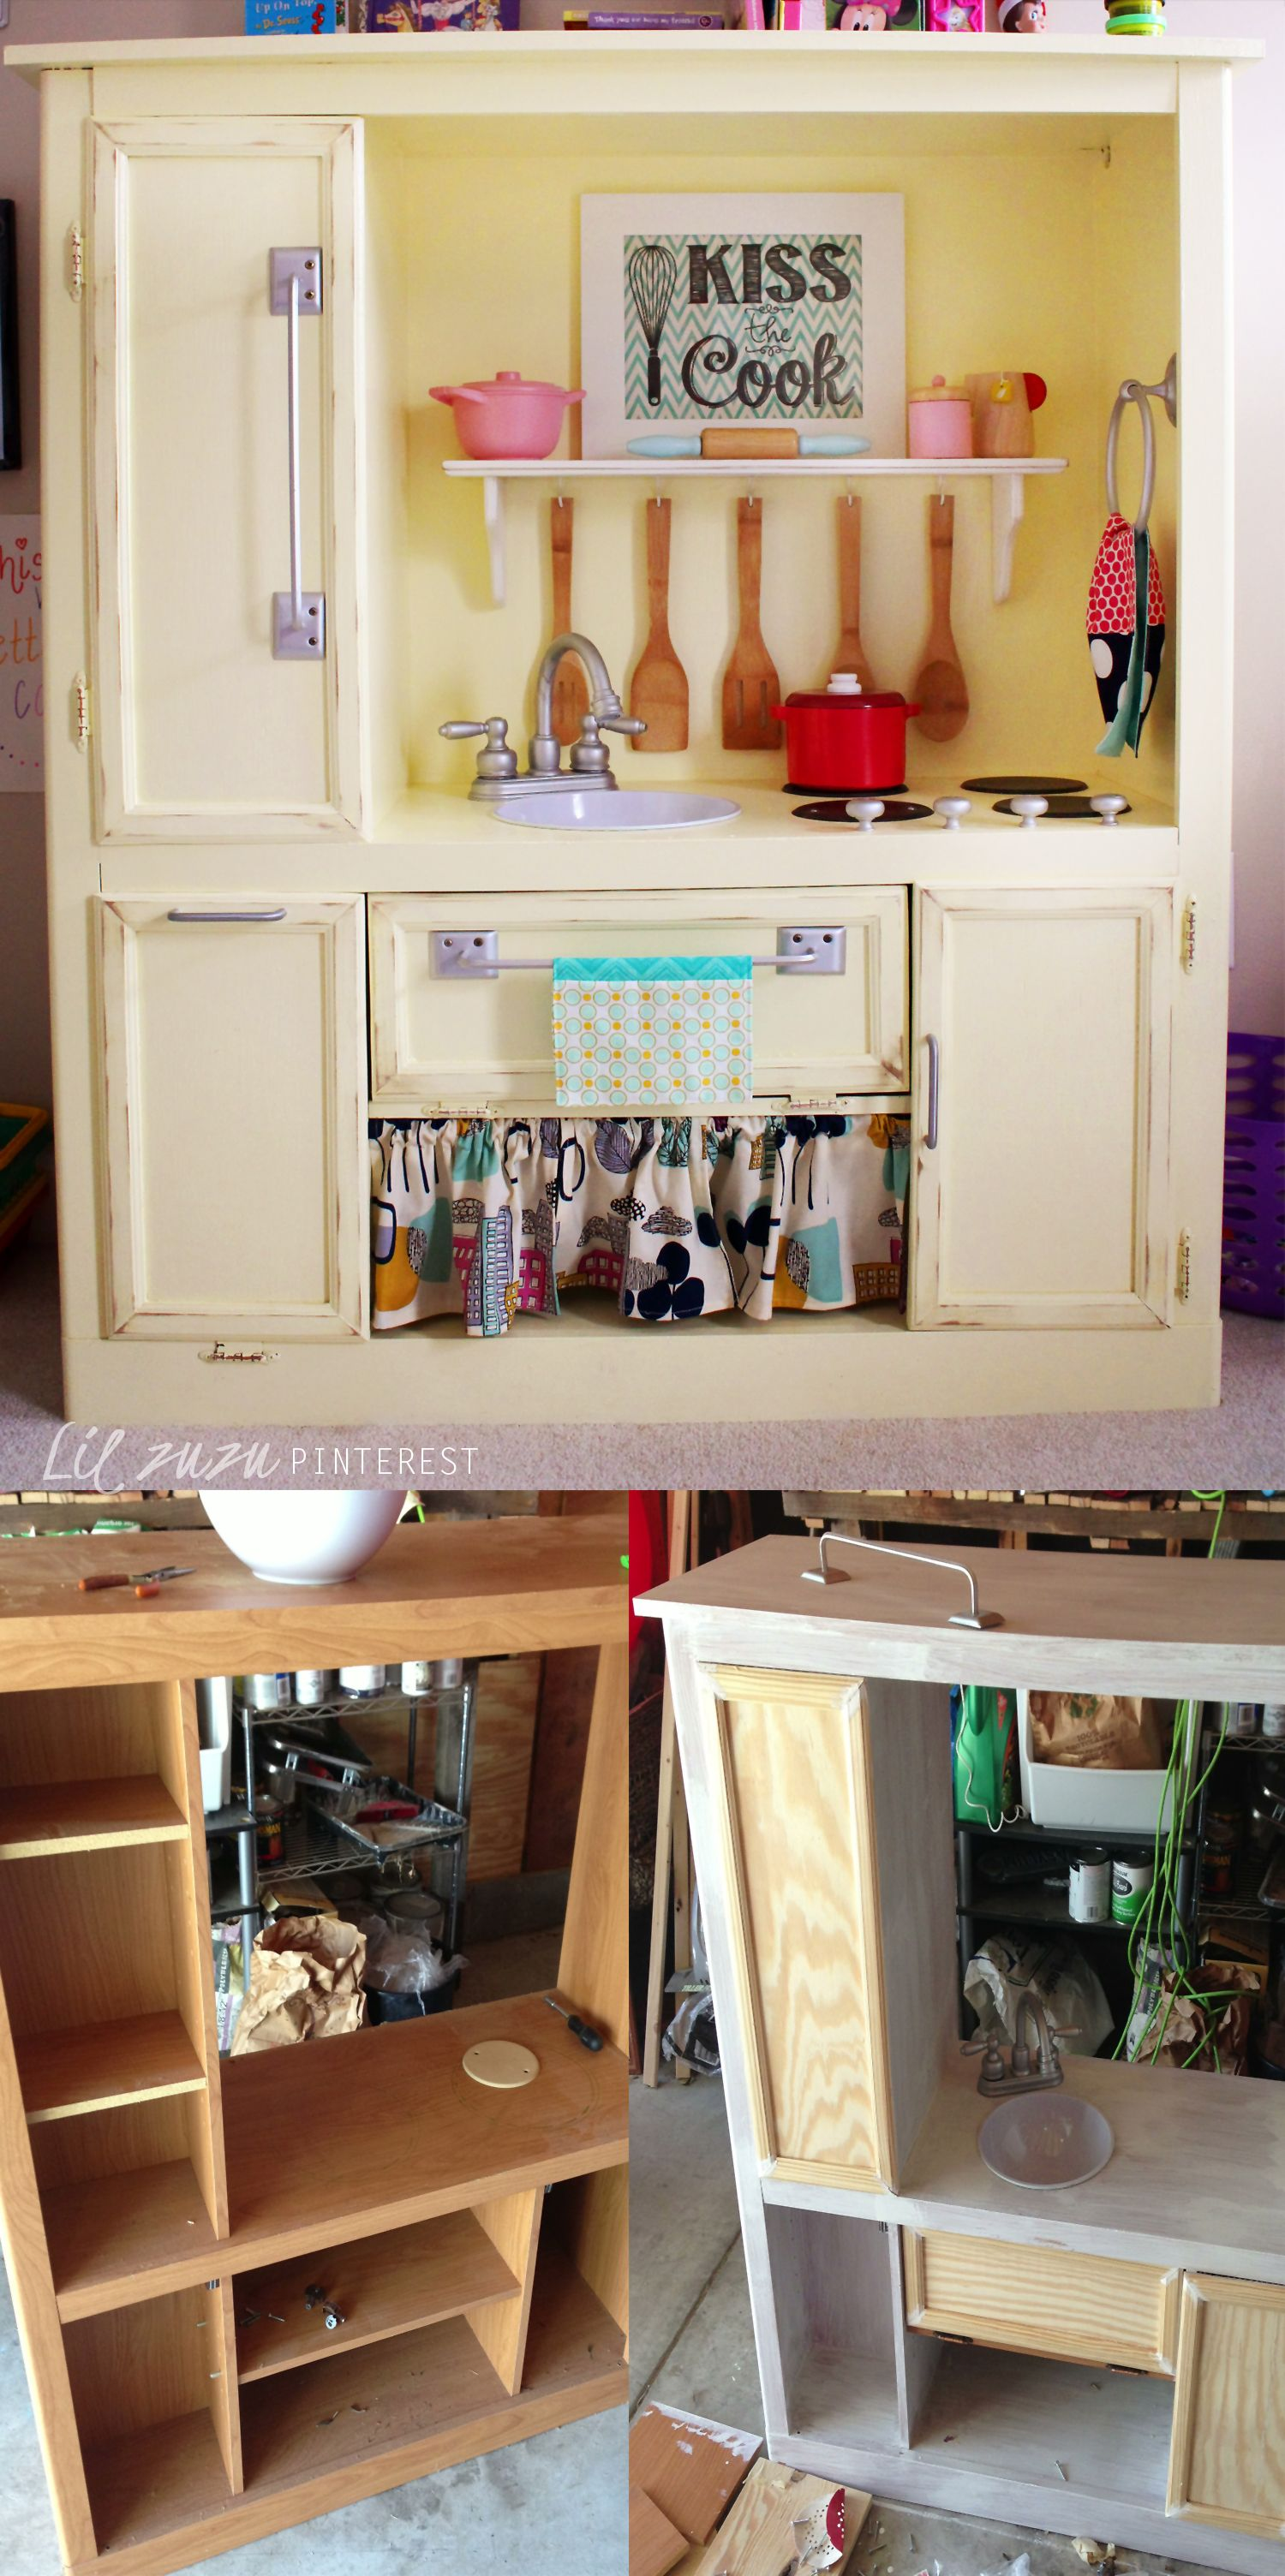 DIY PLAY KITCHEN From Entertainment Center   Found The Cabinet Off  Craigslist For $20. Built Doors From Scrap Wood. All The Hardware Was Found  At Habitat ...